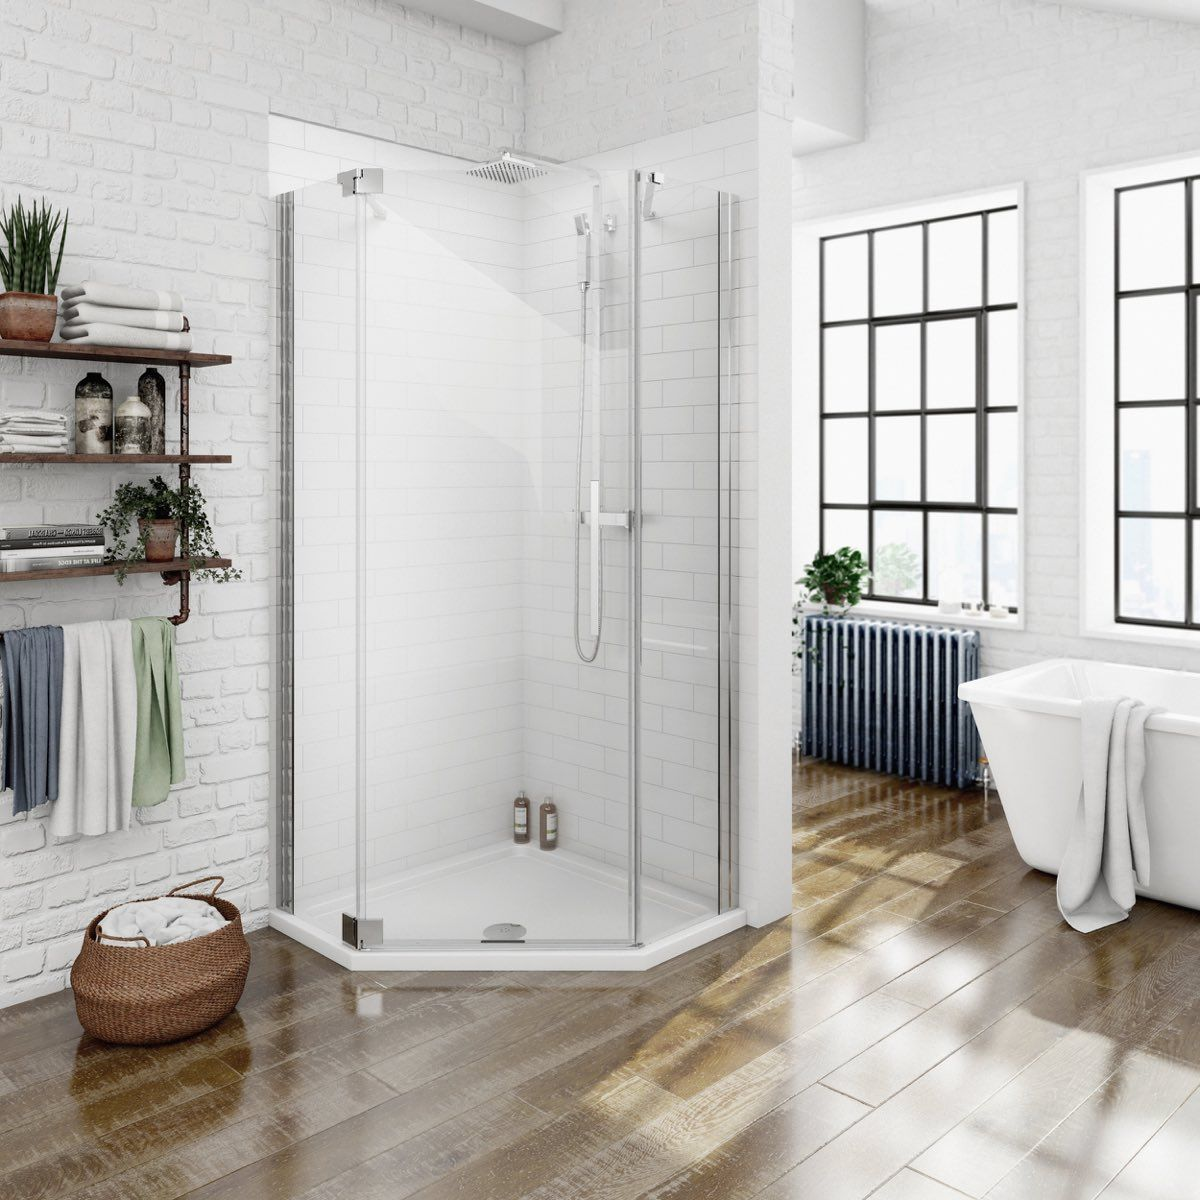 What Are The Things To Consider When Buying A Shower Tray Bathroom Shower Showertray Remodel Shower Enclosure Quadrant Shower Enclosures Quadrant Shower